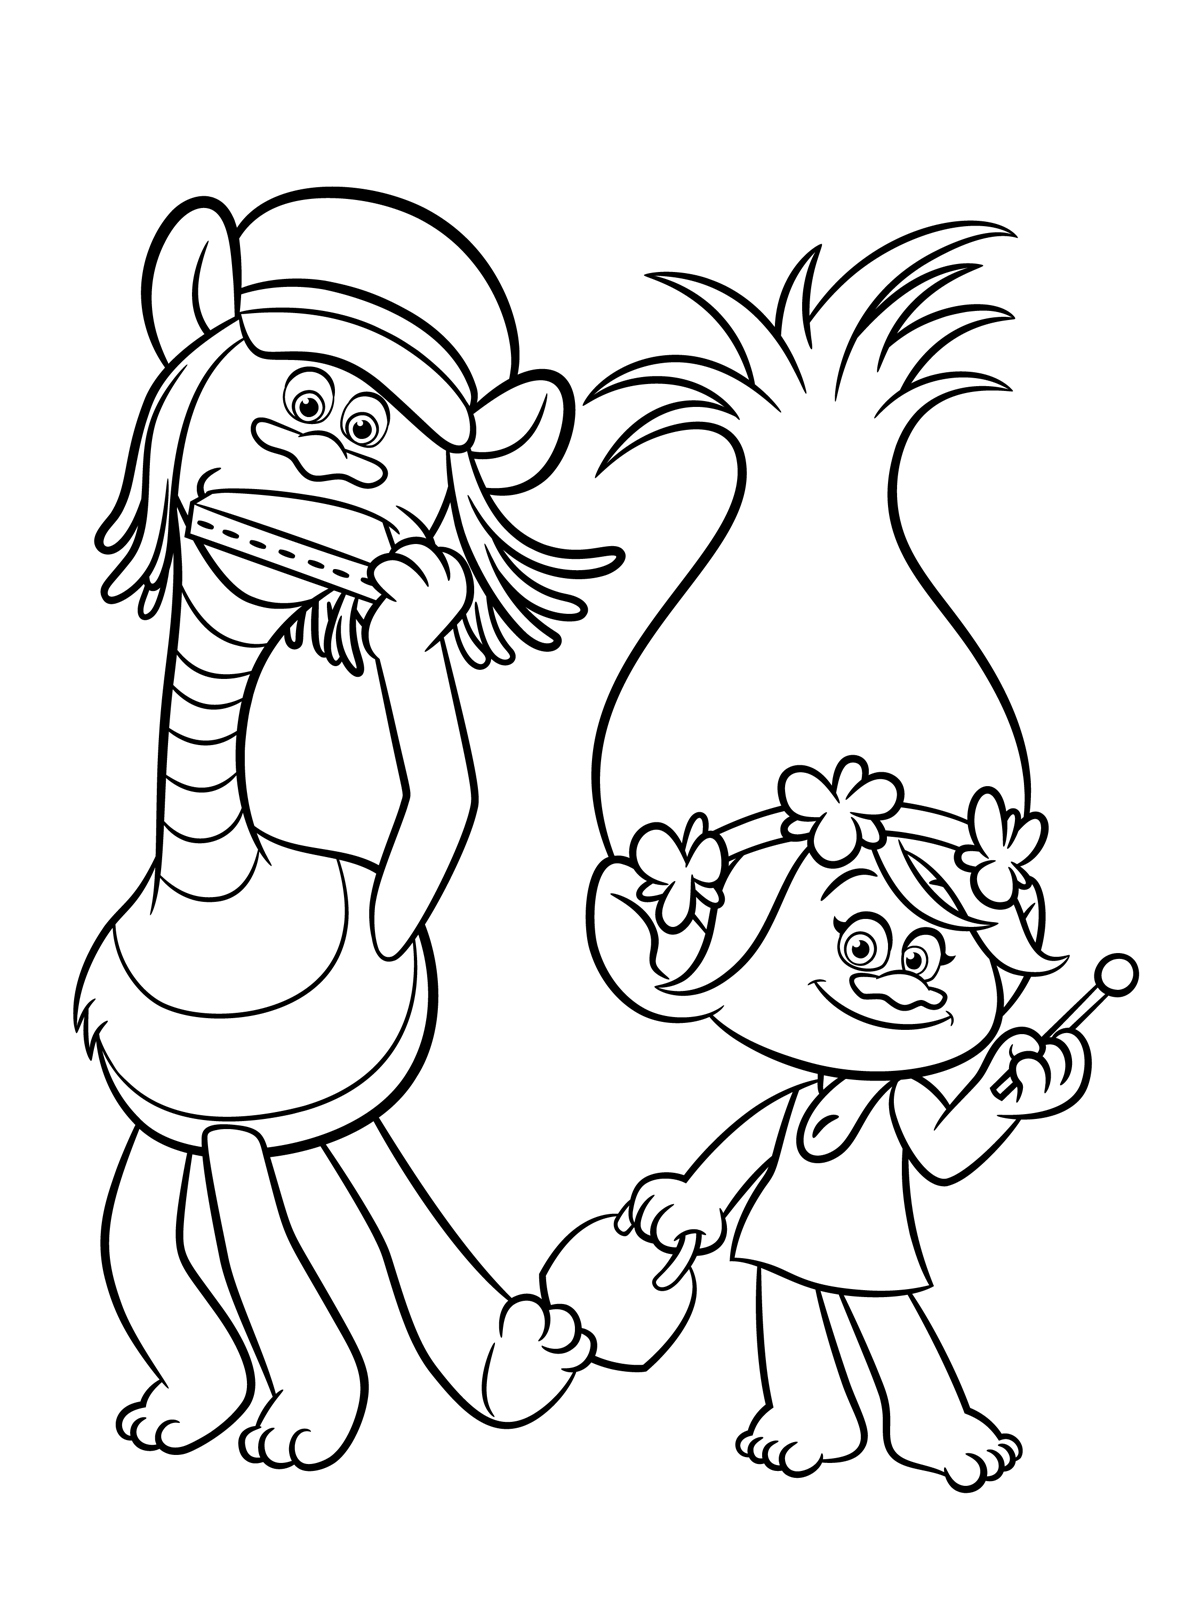 1200x1600 Trolls Coloring Pages To Download And Print For Free